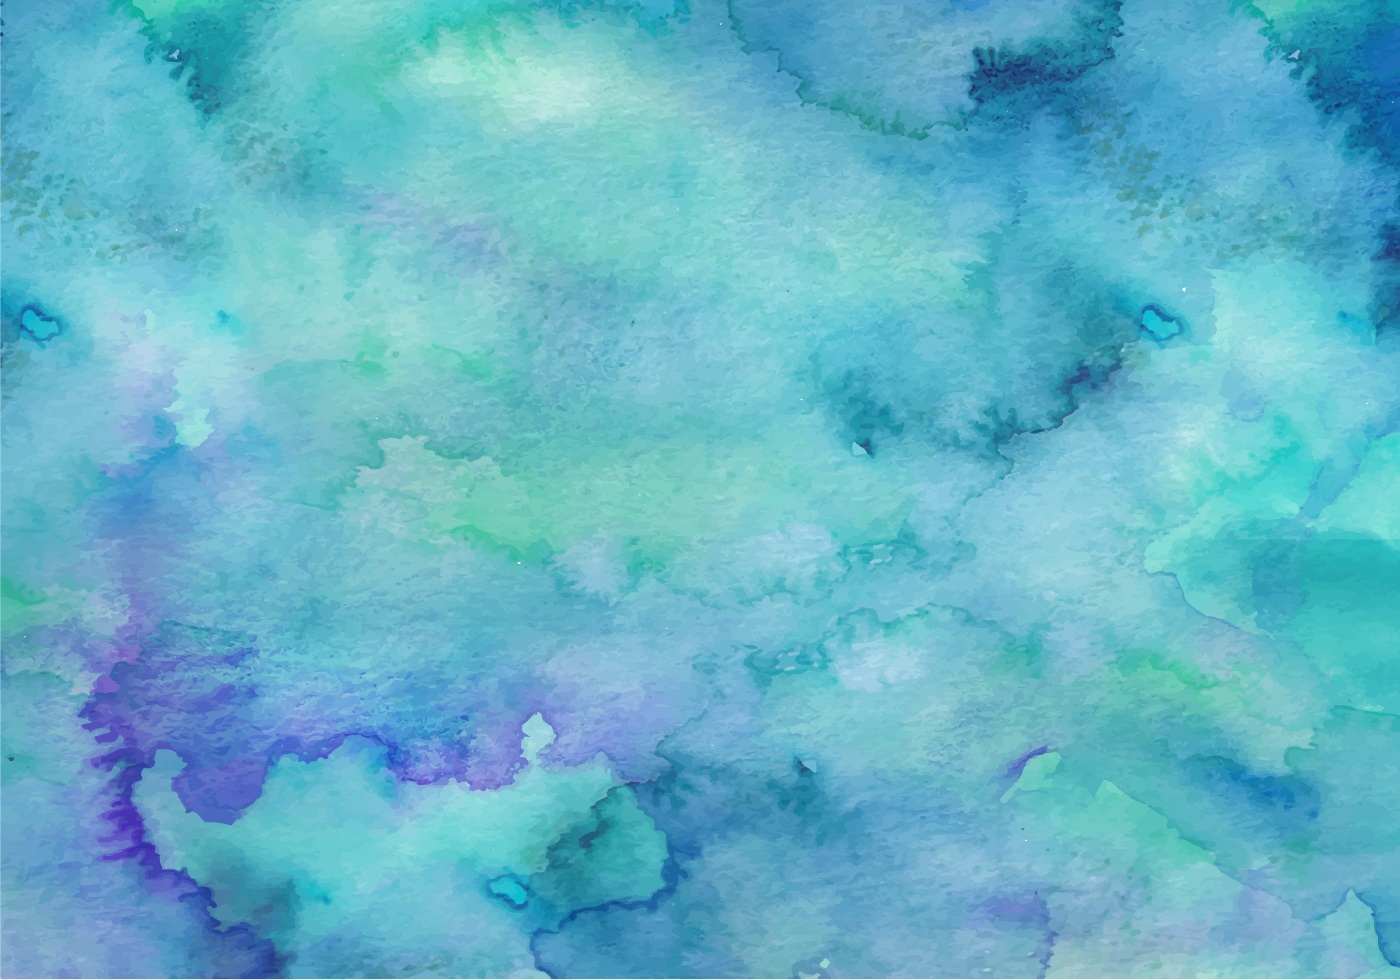 Girly Background Royalty Free Stock Photo: Teal Free Vector Watercolor Background